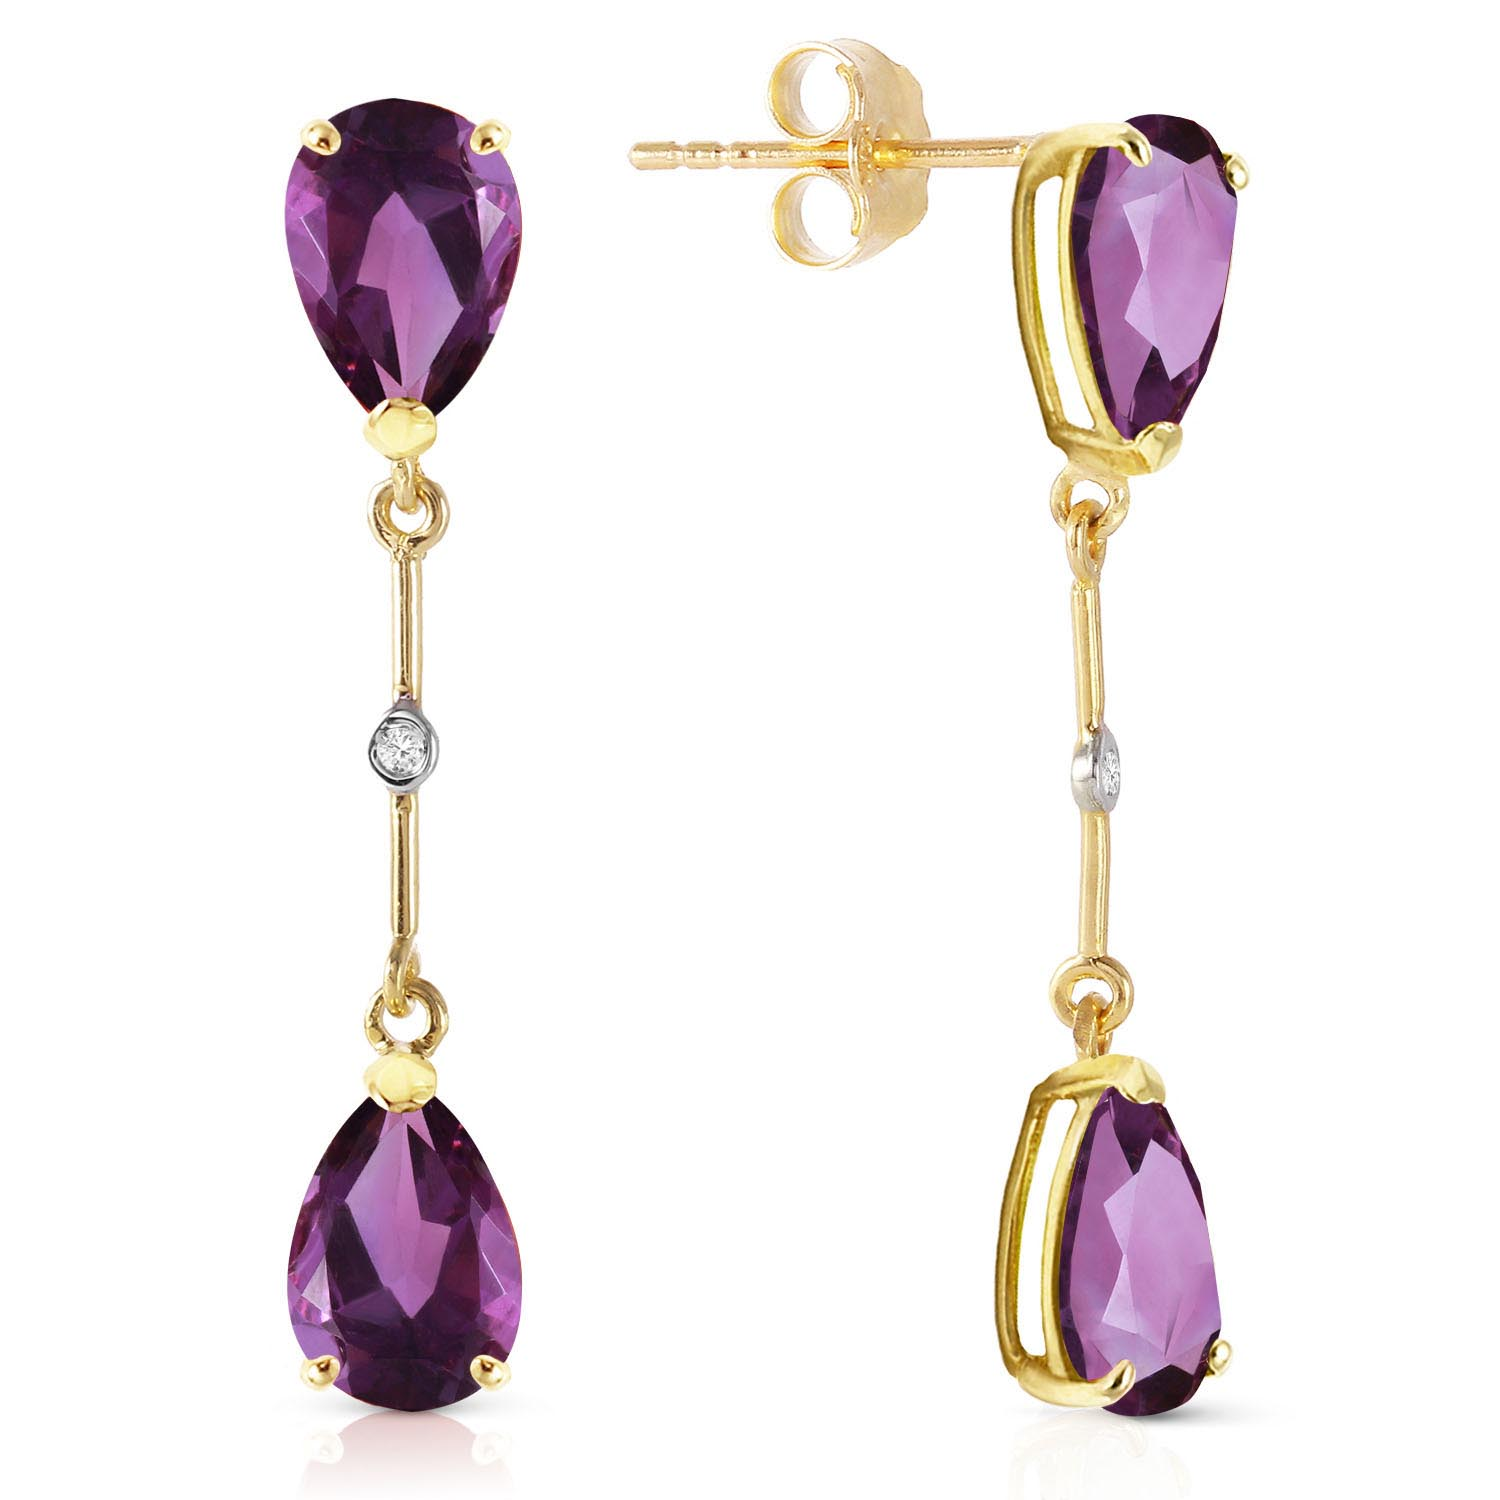 Amethyst Drop Earrings 6.01 ctw in 9ct Gold